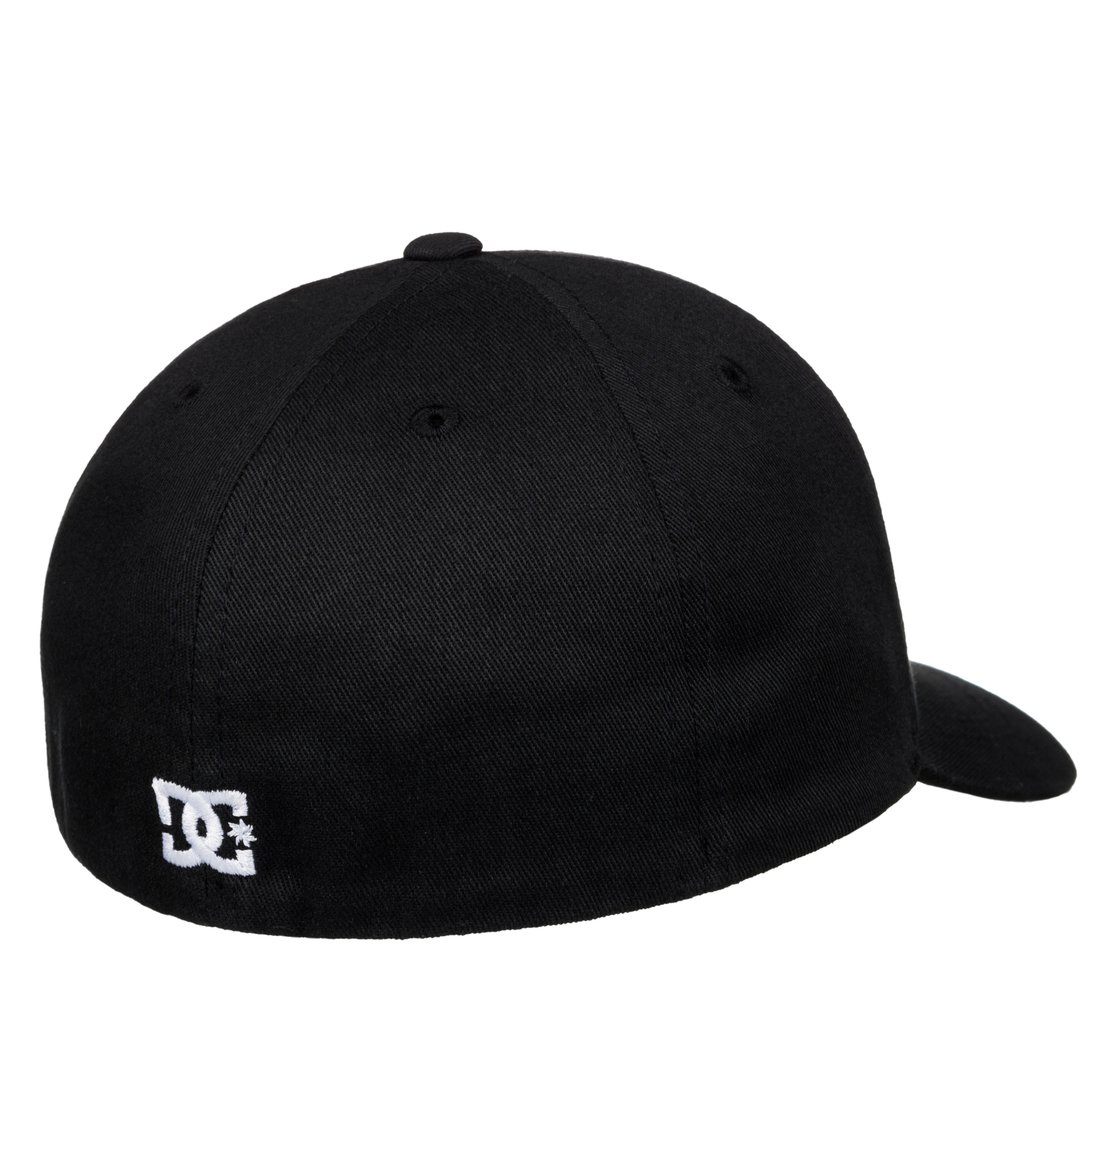 Boy S 2 7 Hat Star Flexfit Adkha03002 Dc Shoes 898c0876ff90